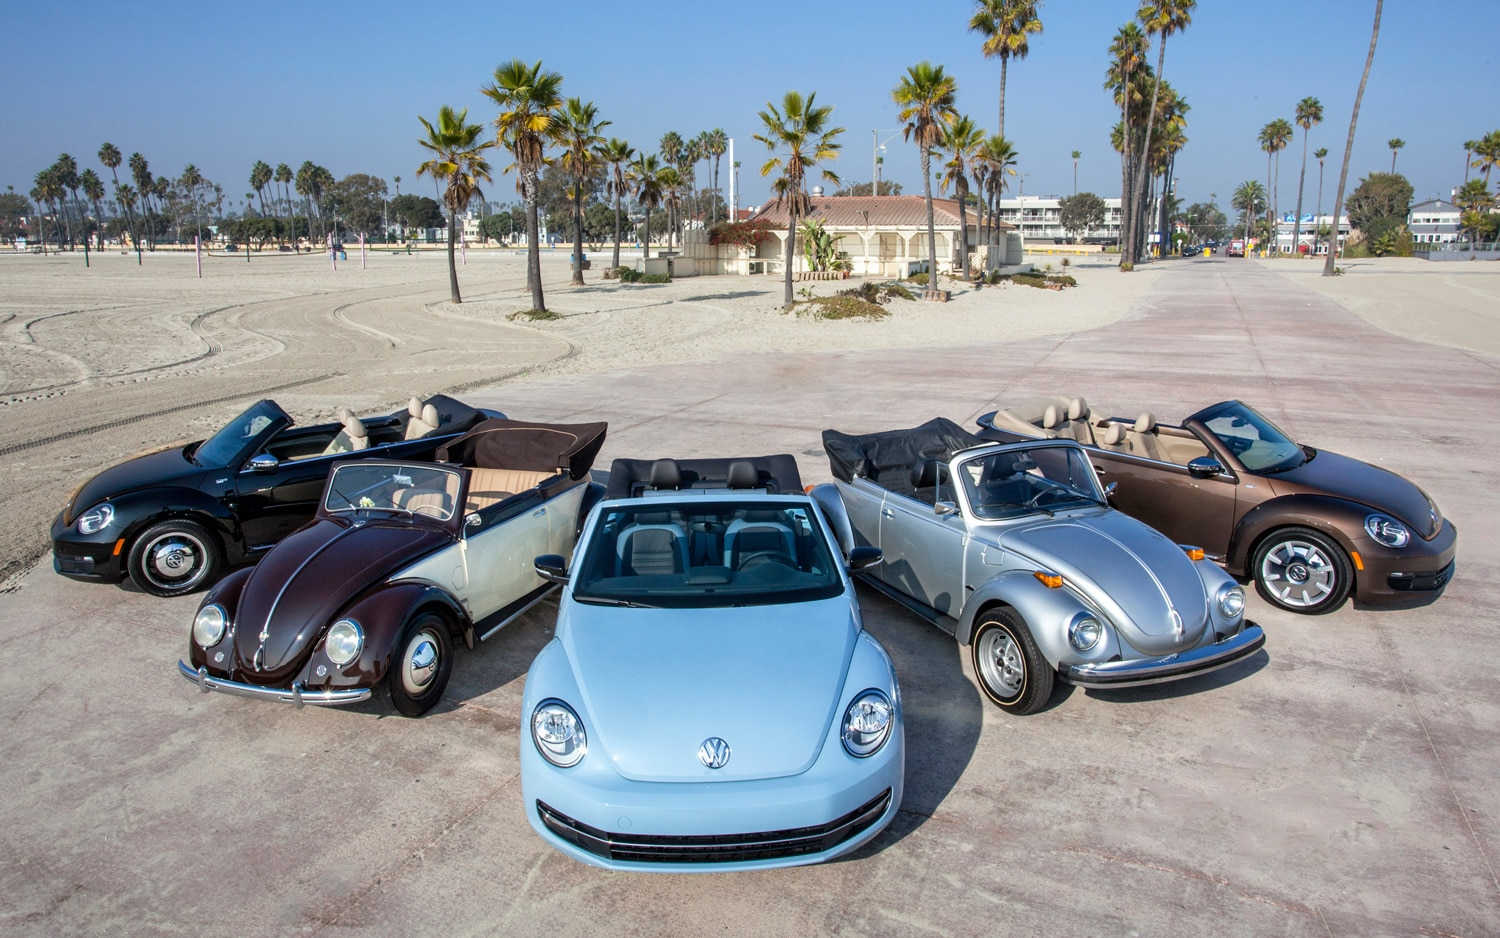 2013 Volkswagen Beetle Convertible Decade Editions With Old Beetles1